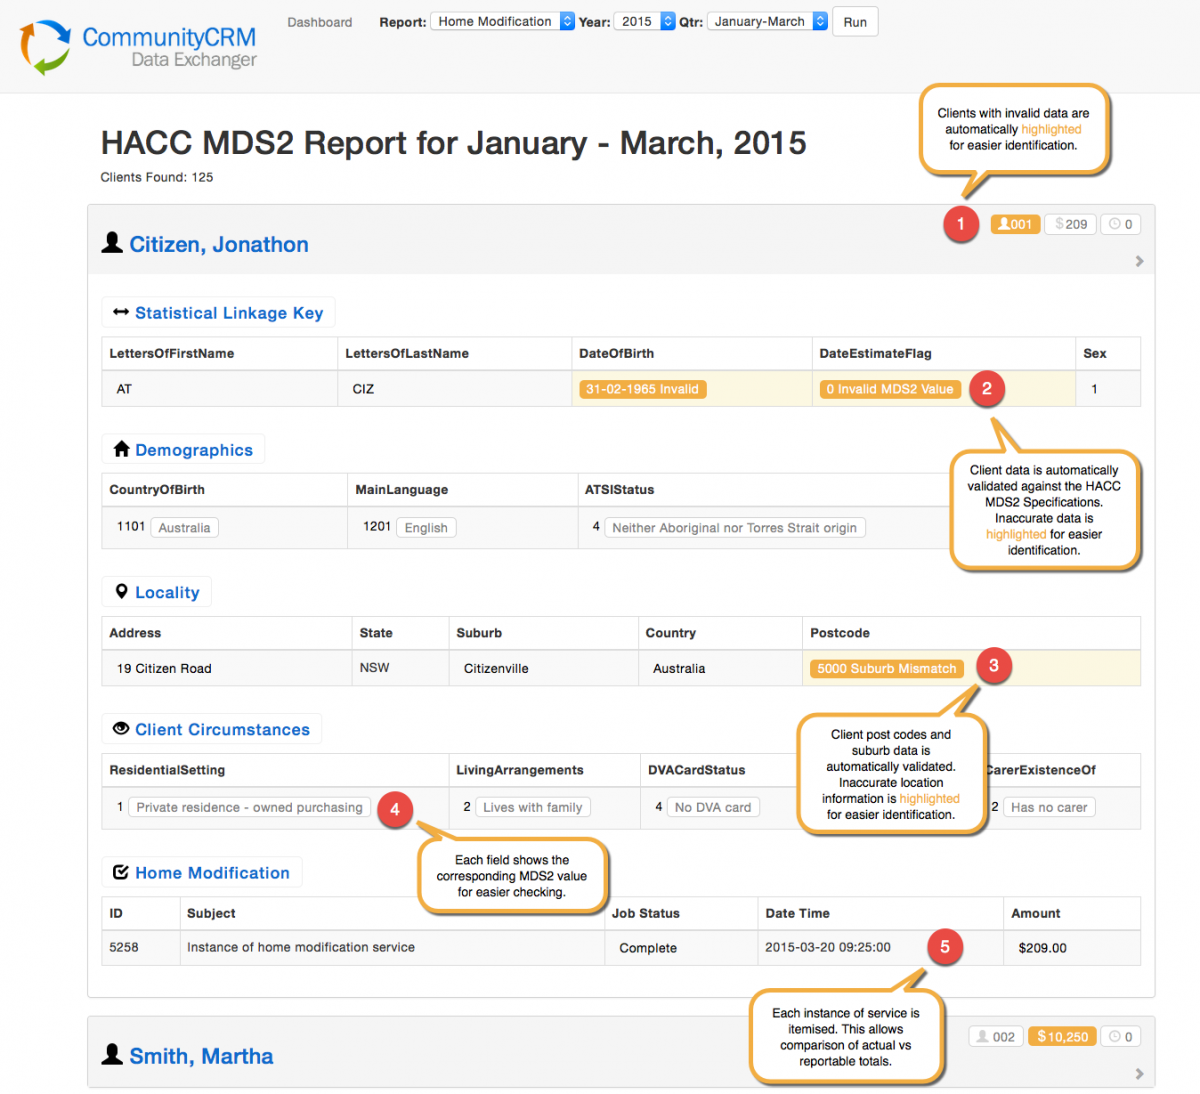 HACC MDS2 Reporting with CiviCRM using CommunityCRMs Data Exchanger